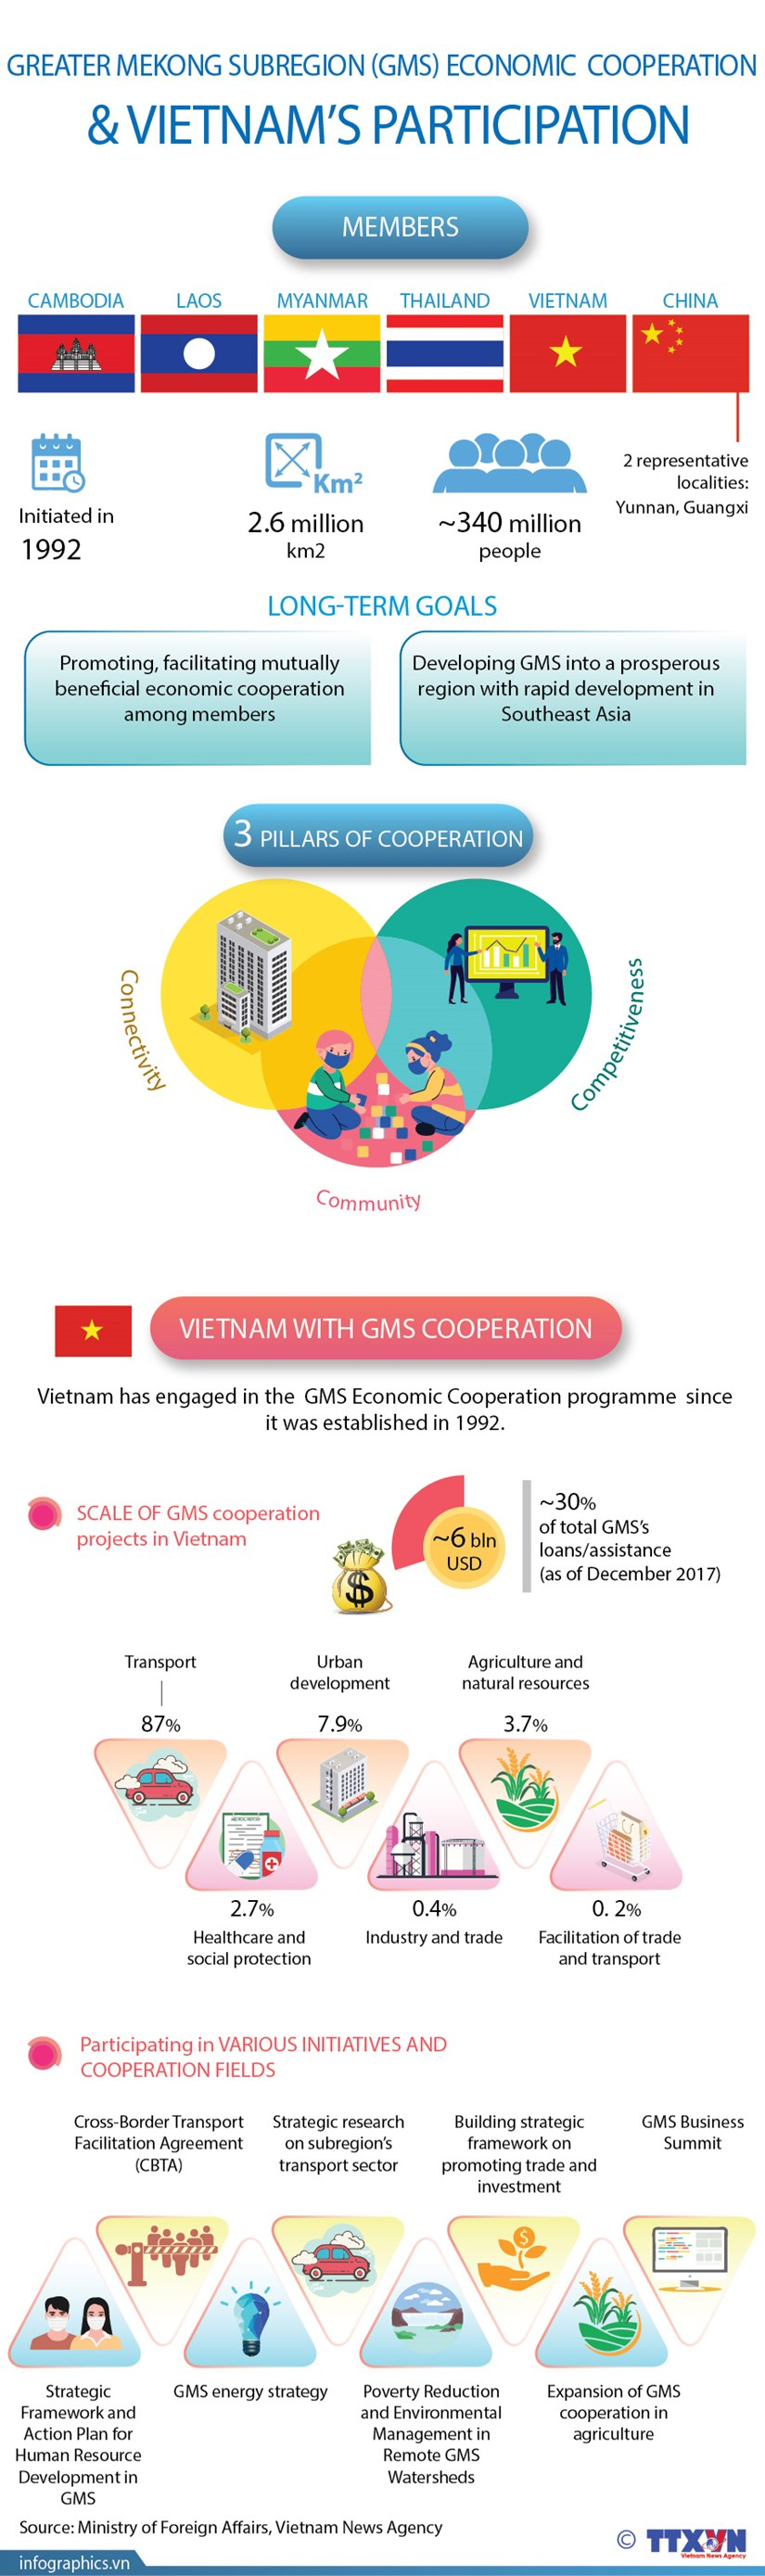 Greater Mekong Subregion (GMS) economic cooperation & Vietnam's participation hinh anh 1